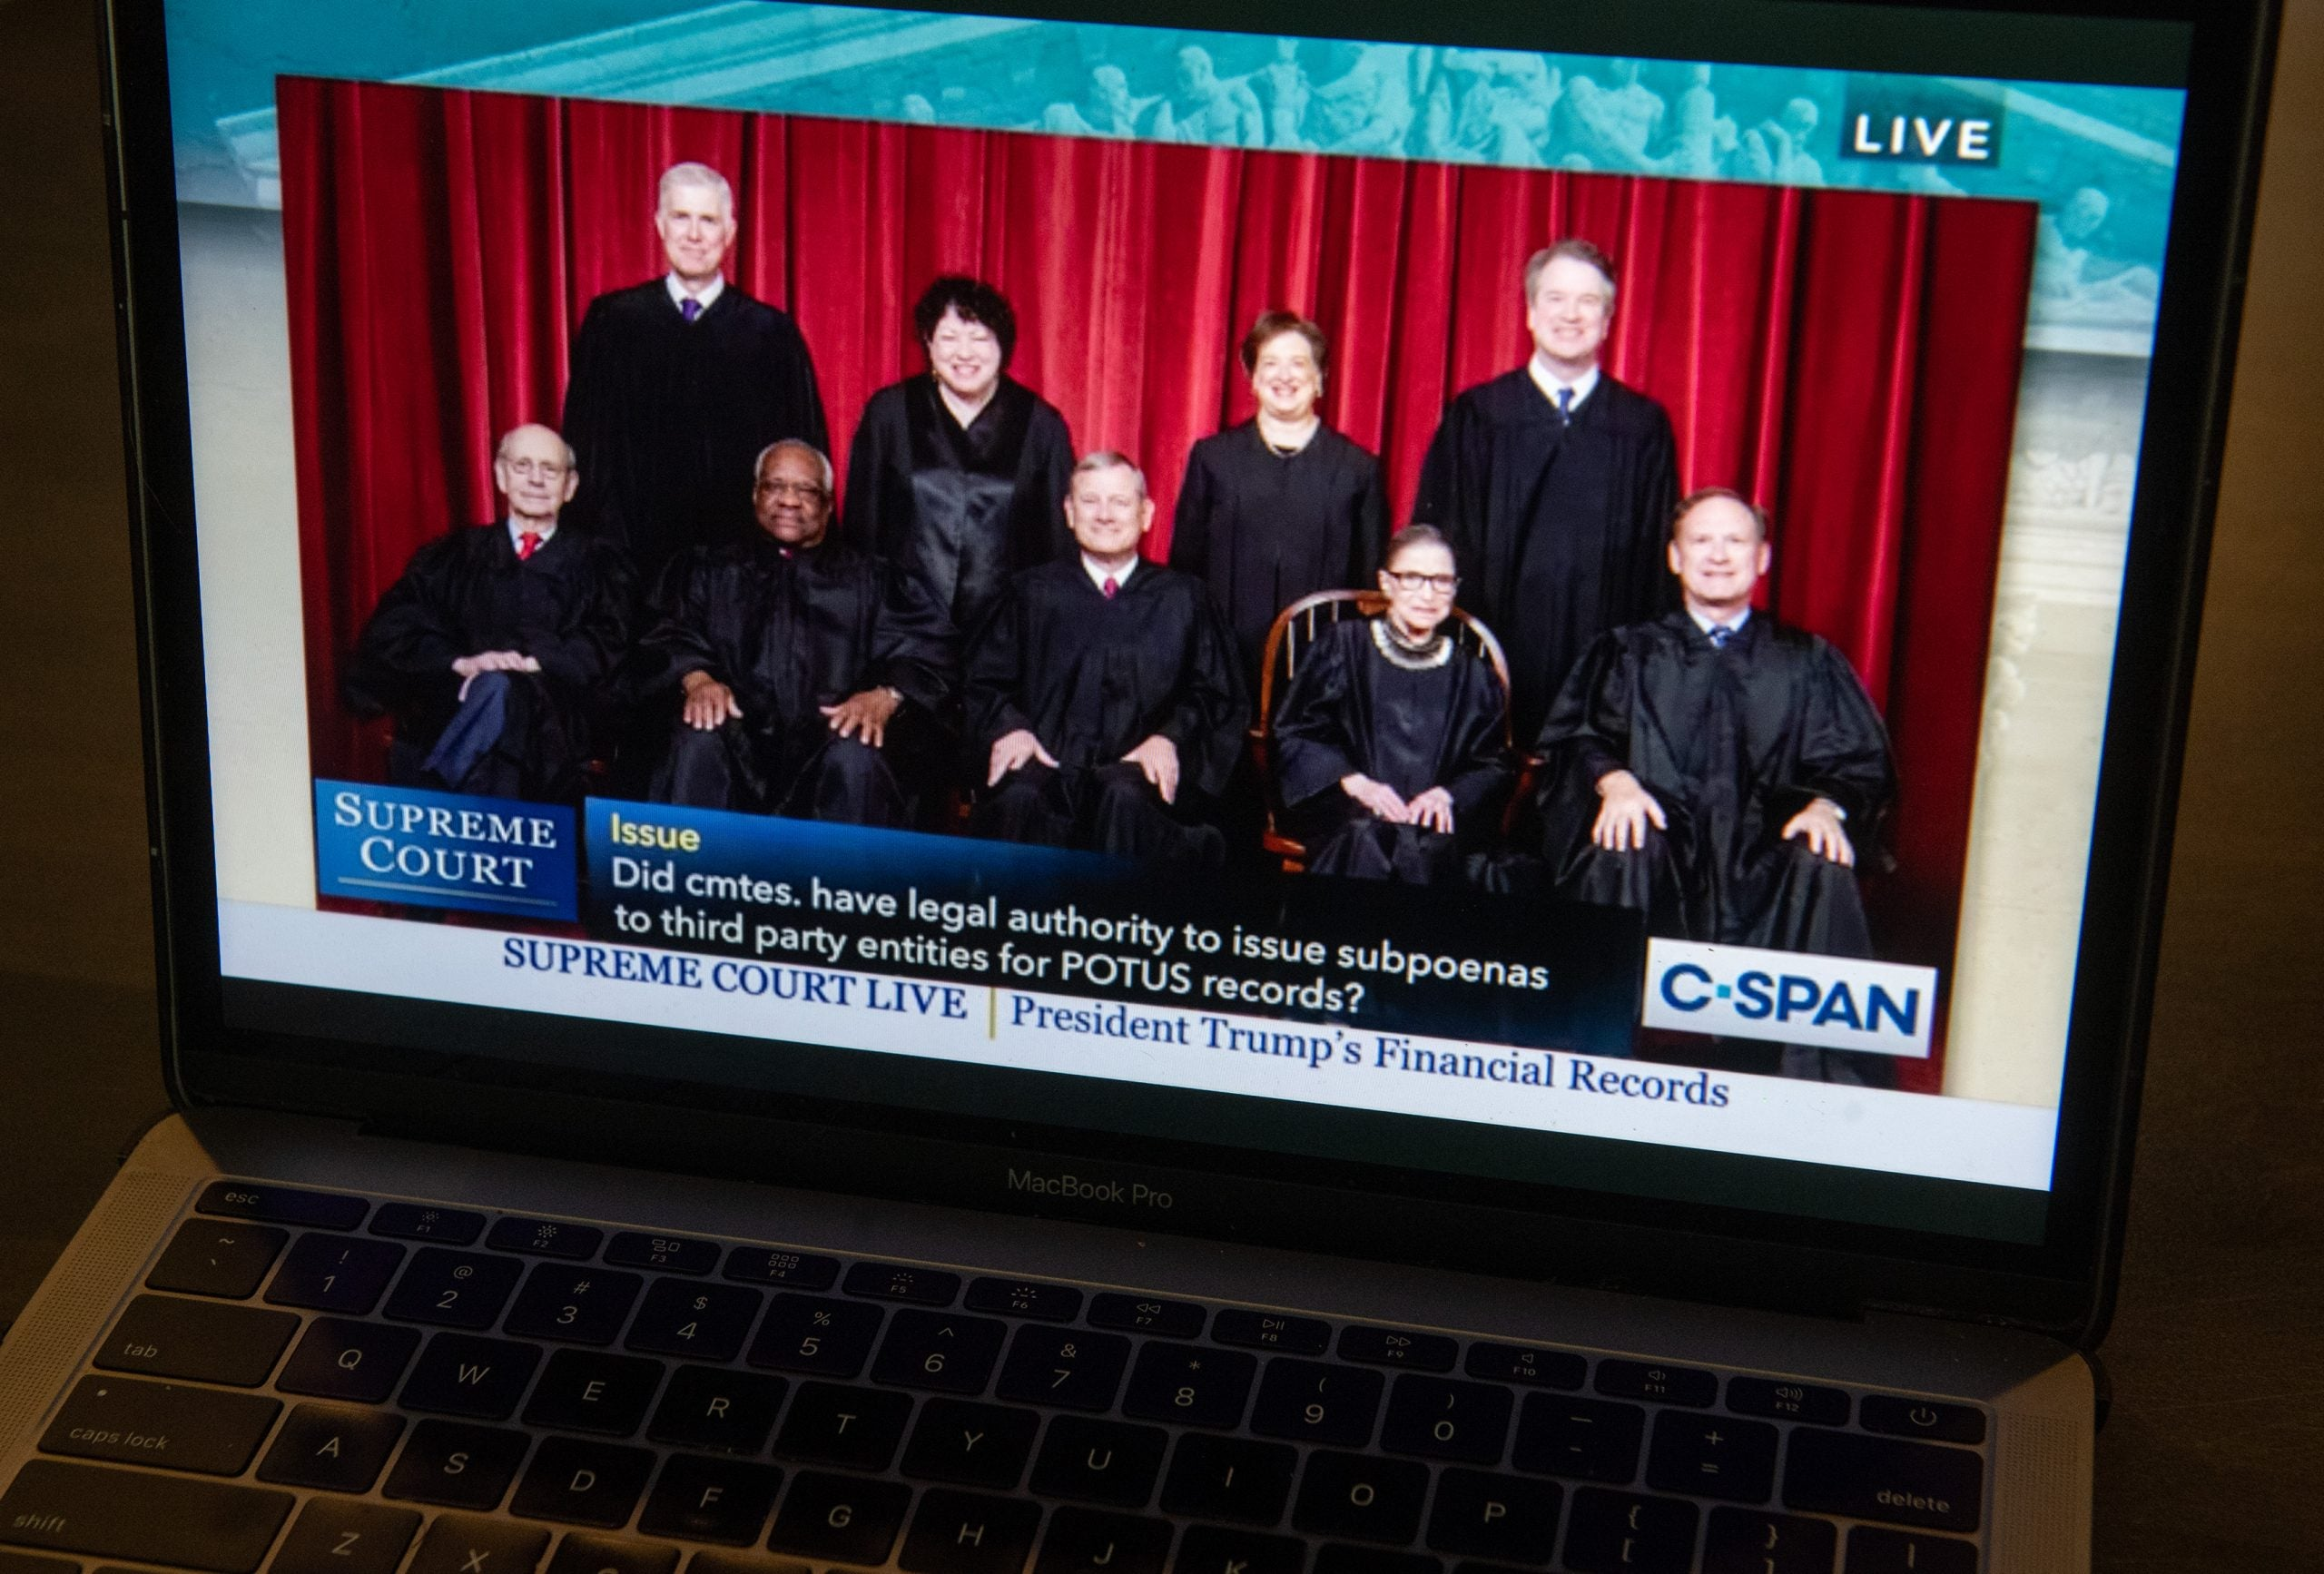 An audio feed of Supreme Court oral arguments in Trump v. Mazars and Trump v. Deutche Bank AG, dealing with the subpoenas from the US Congress to obtain US President Donald Trump's financial records.